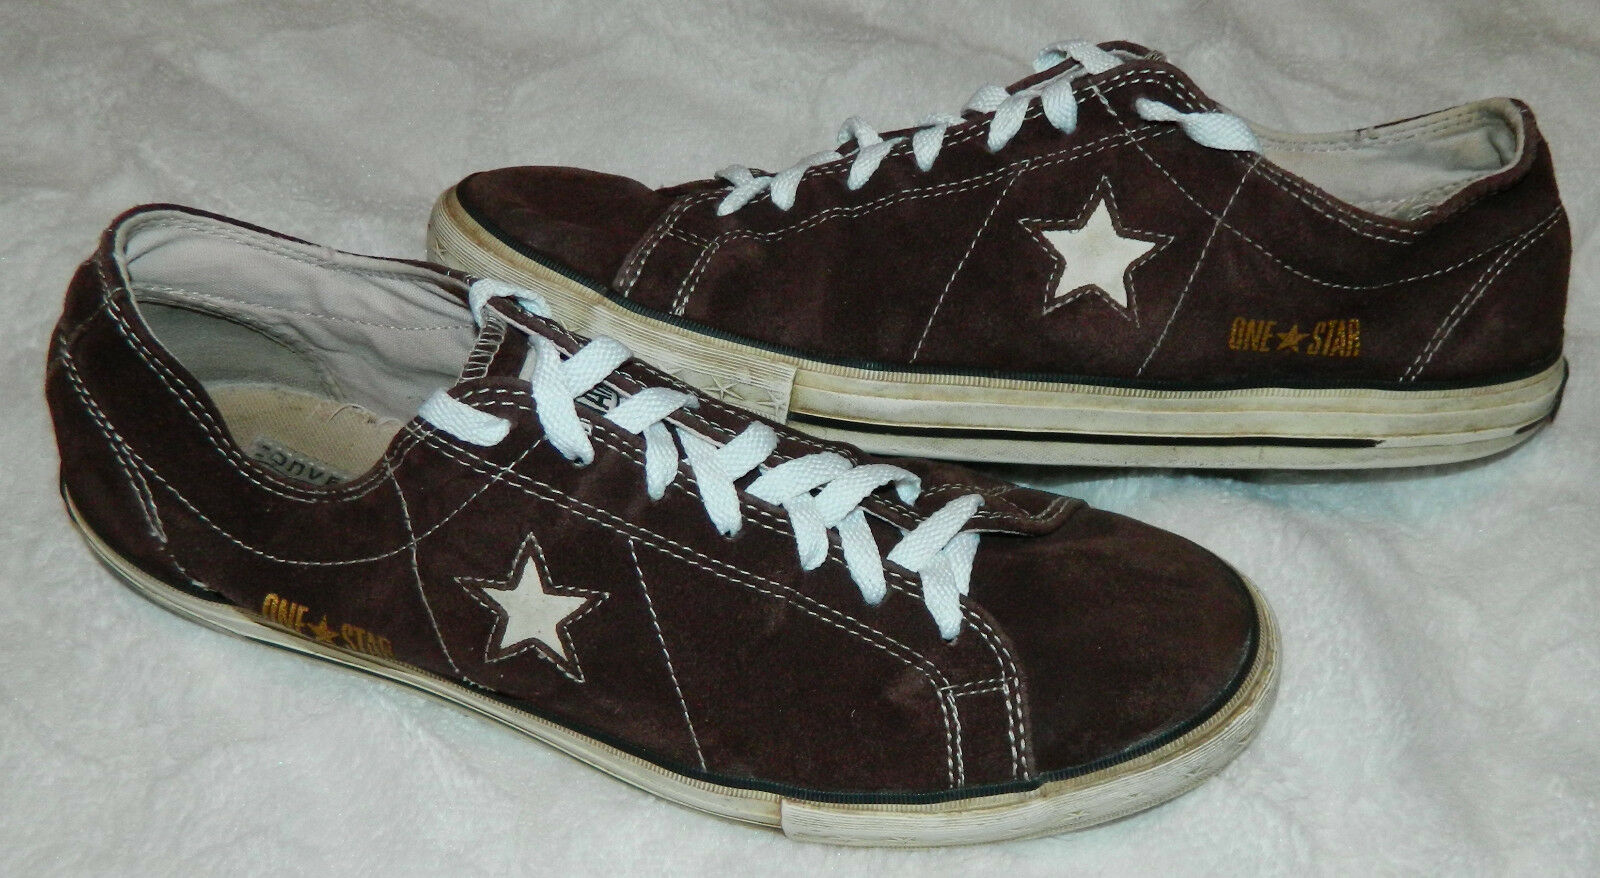 CONVERSE ONE STAR Mens 12 SNEAKERS shoes SUEDE Athletic Casual BROWN